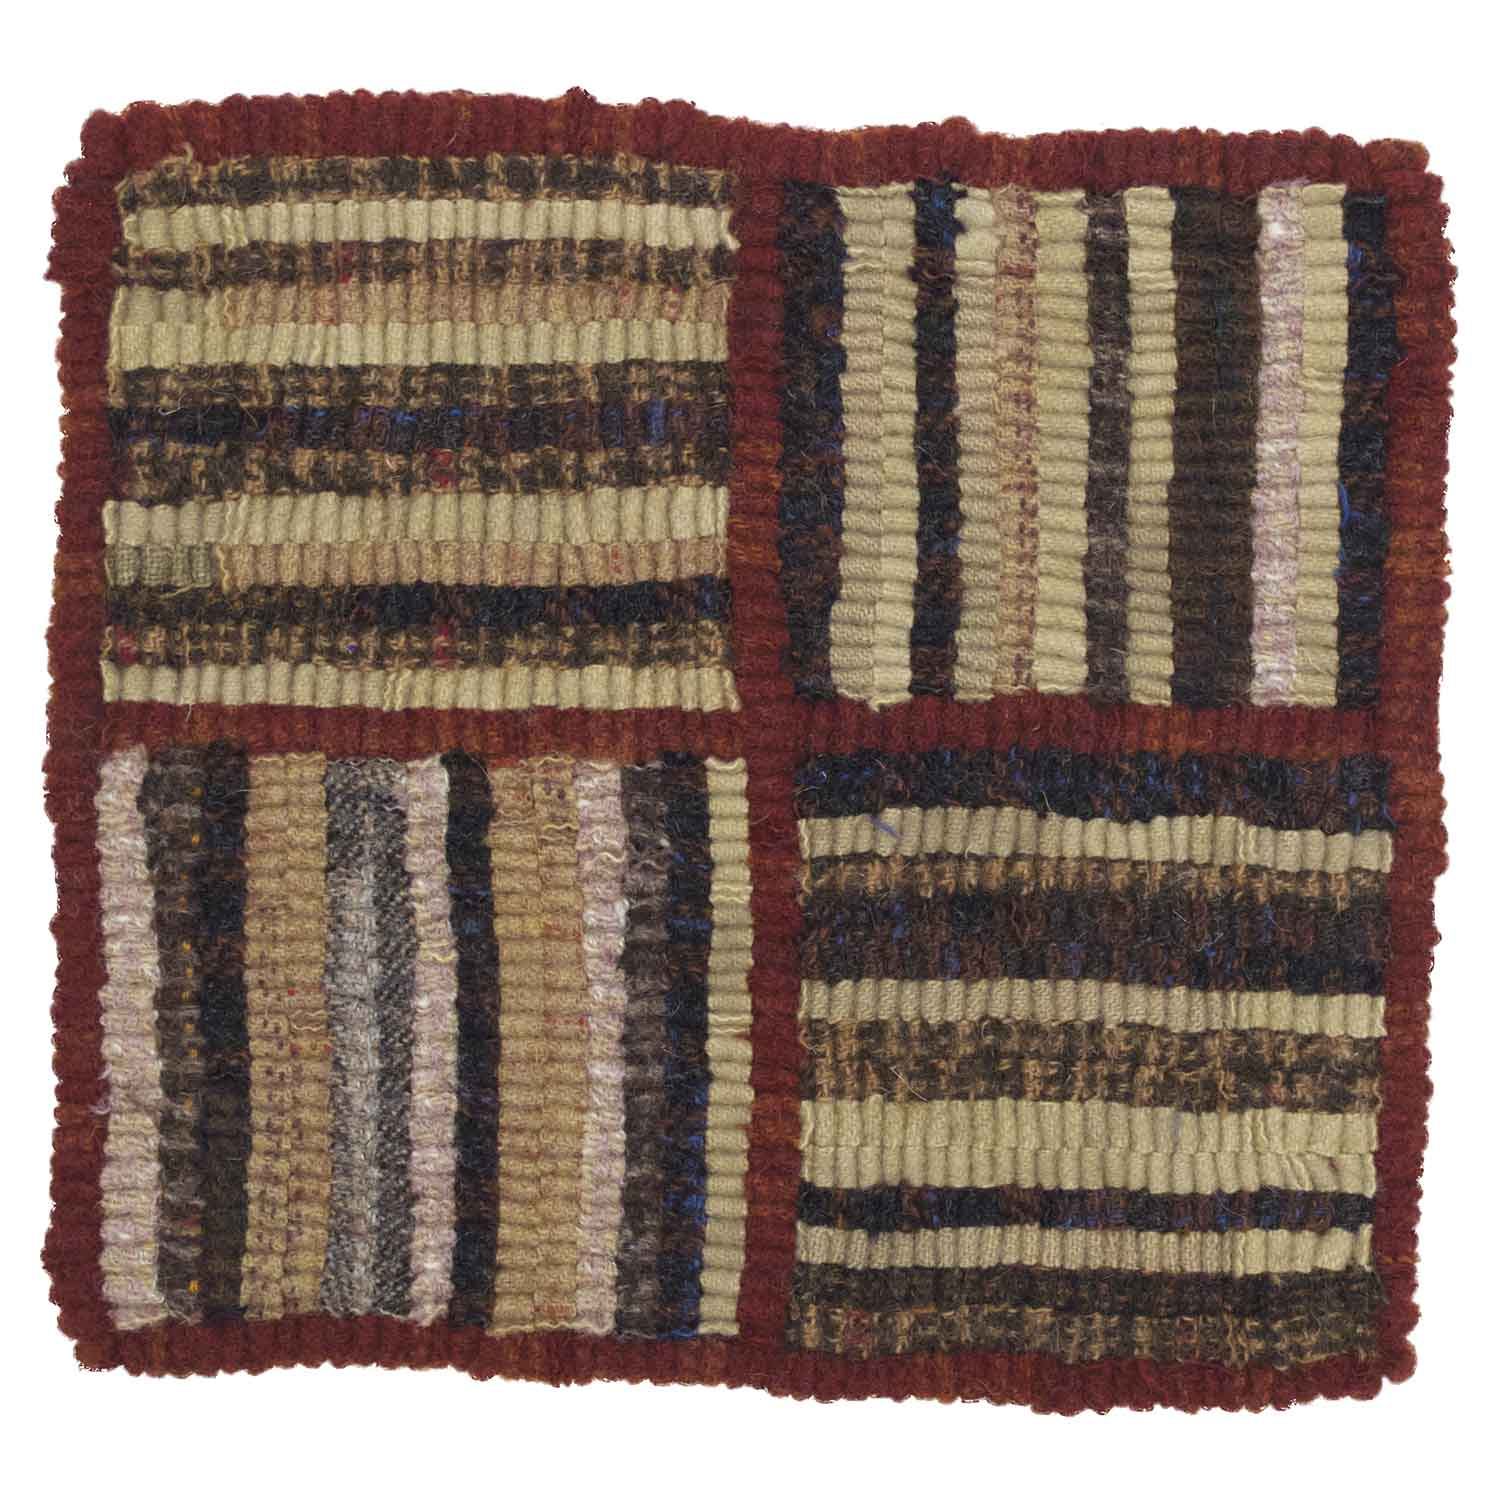 Four Squares Hooked Rug